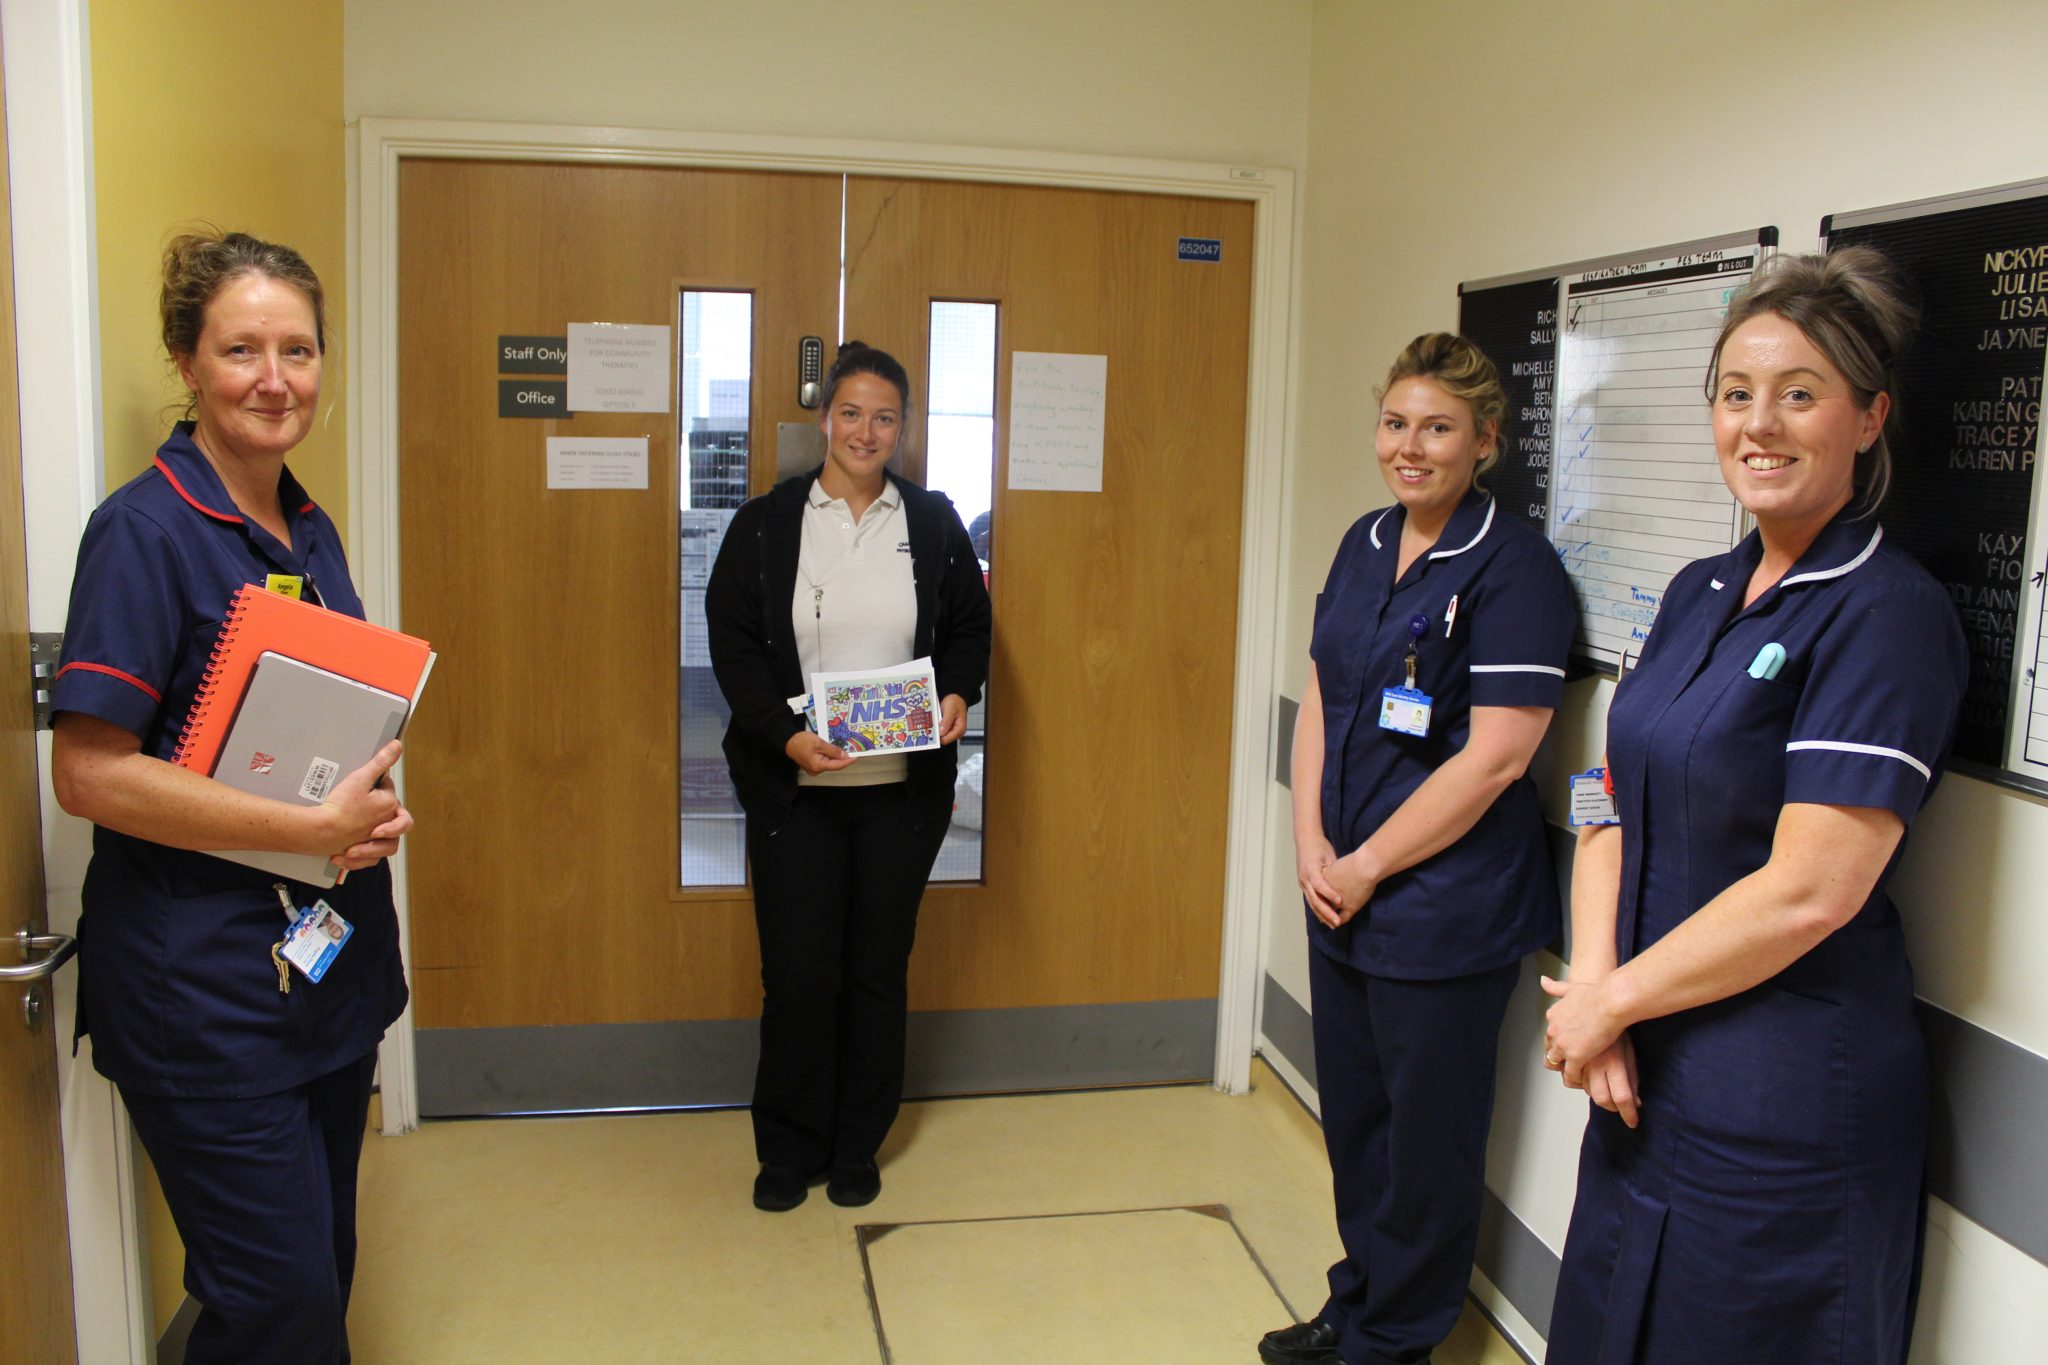 Thanking therapies for supporting ICU